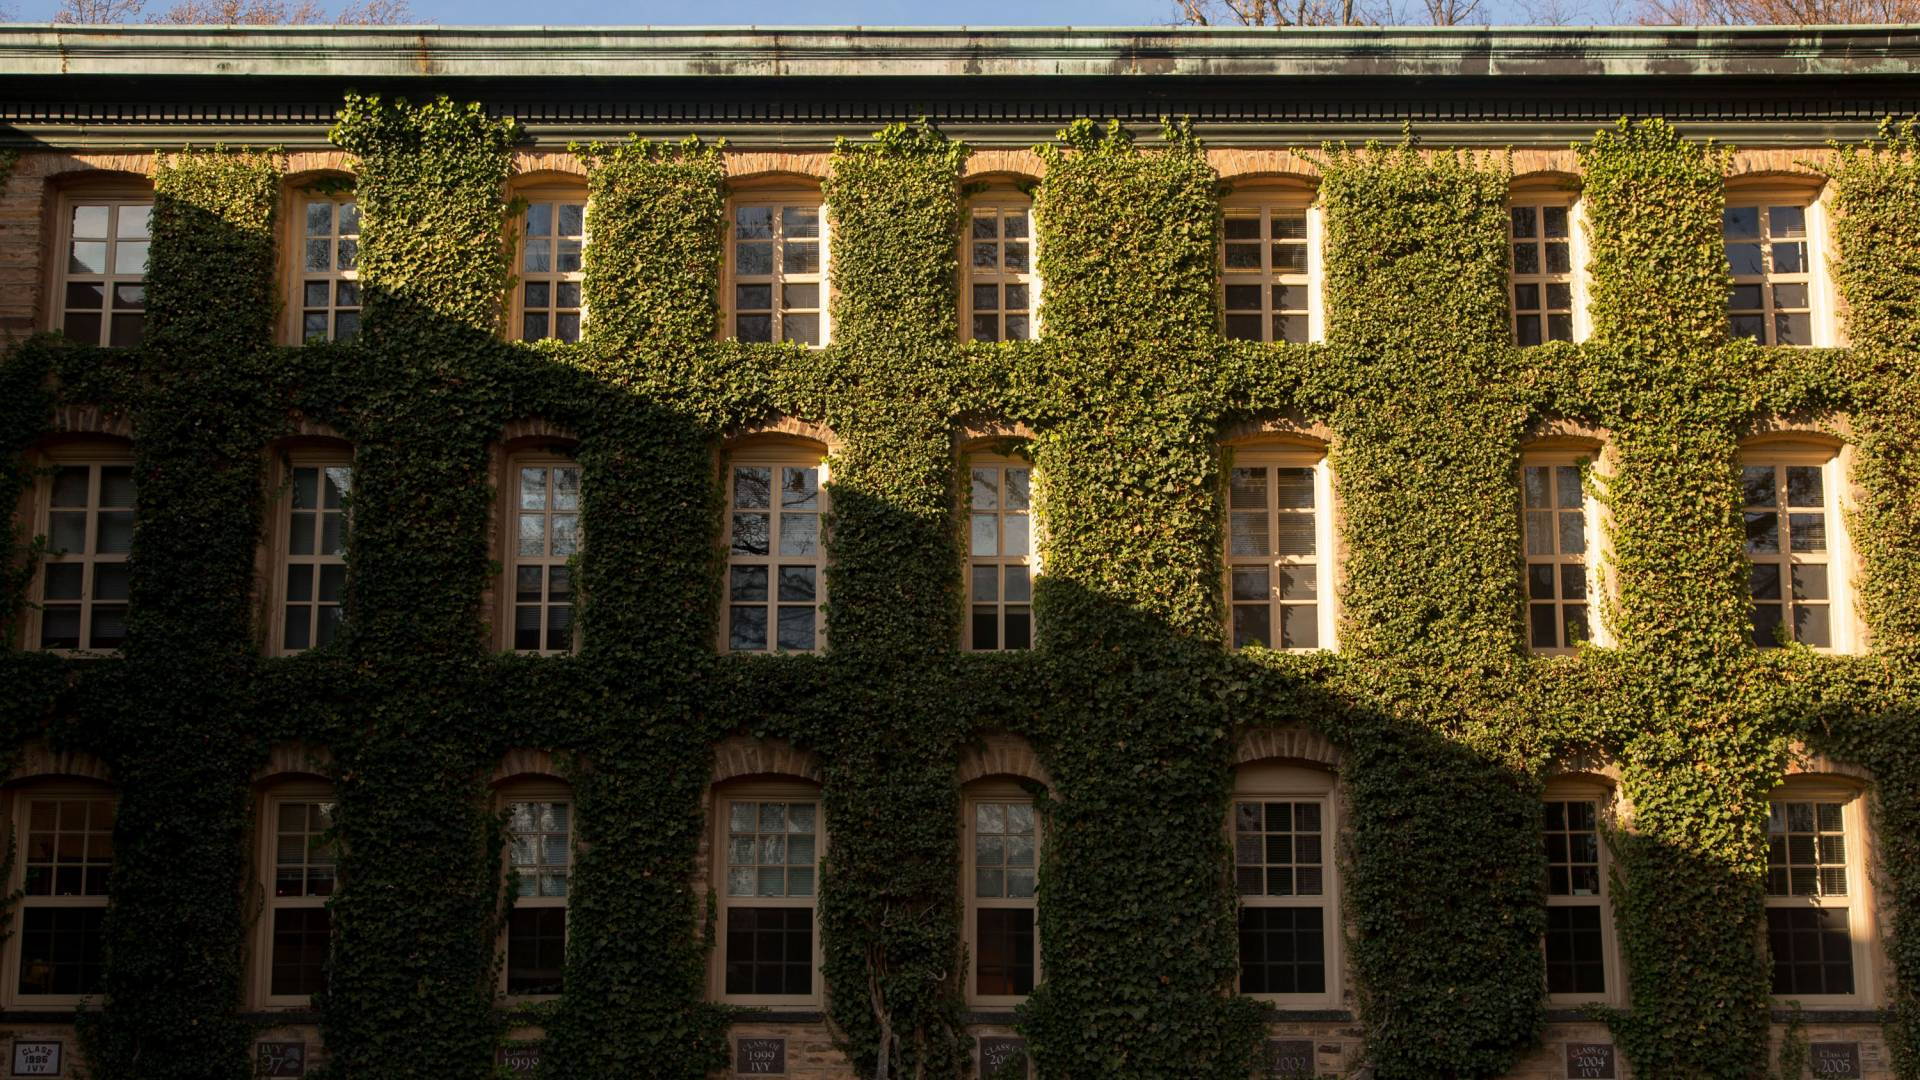 Nassau Hall windows and ivy